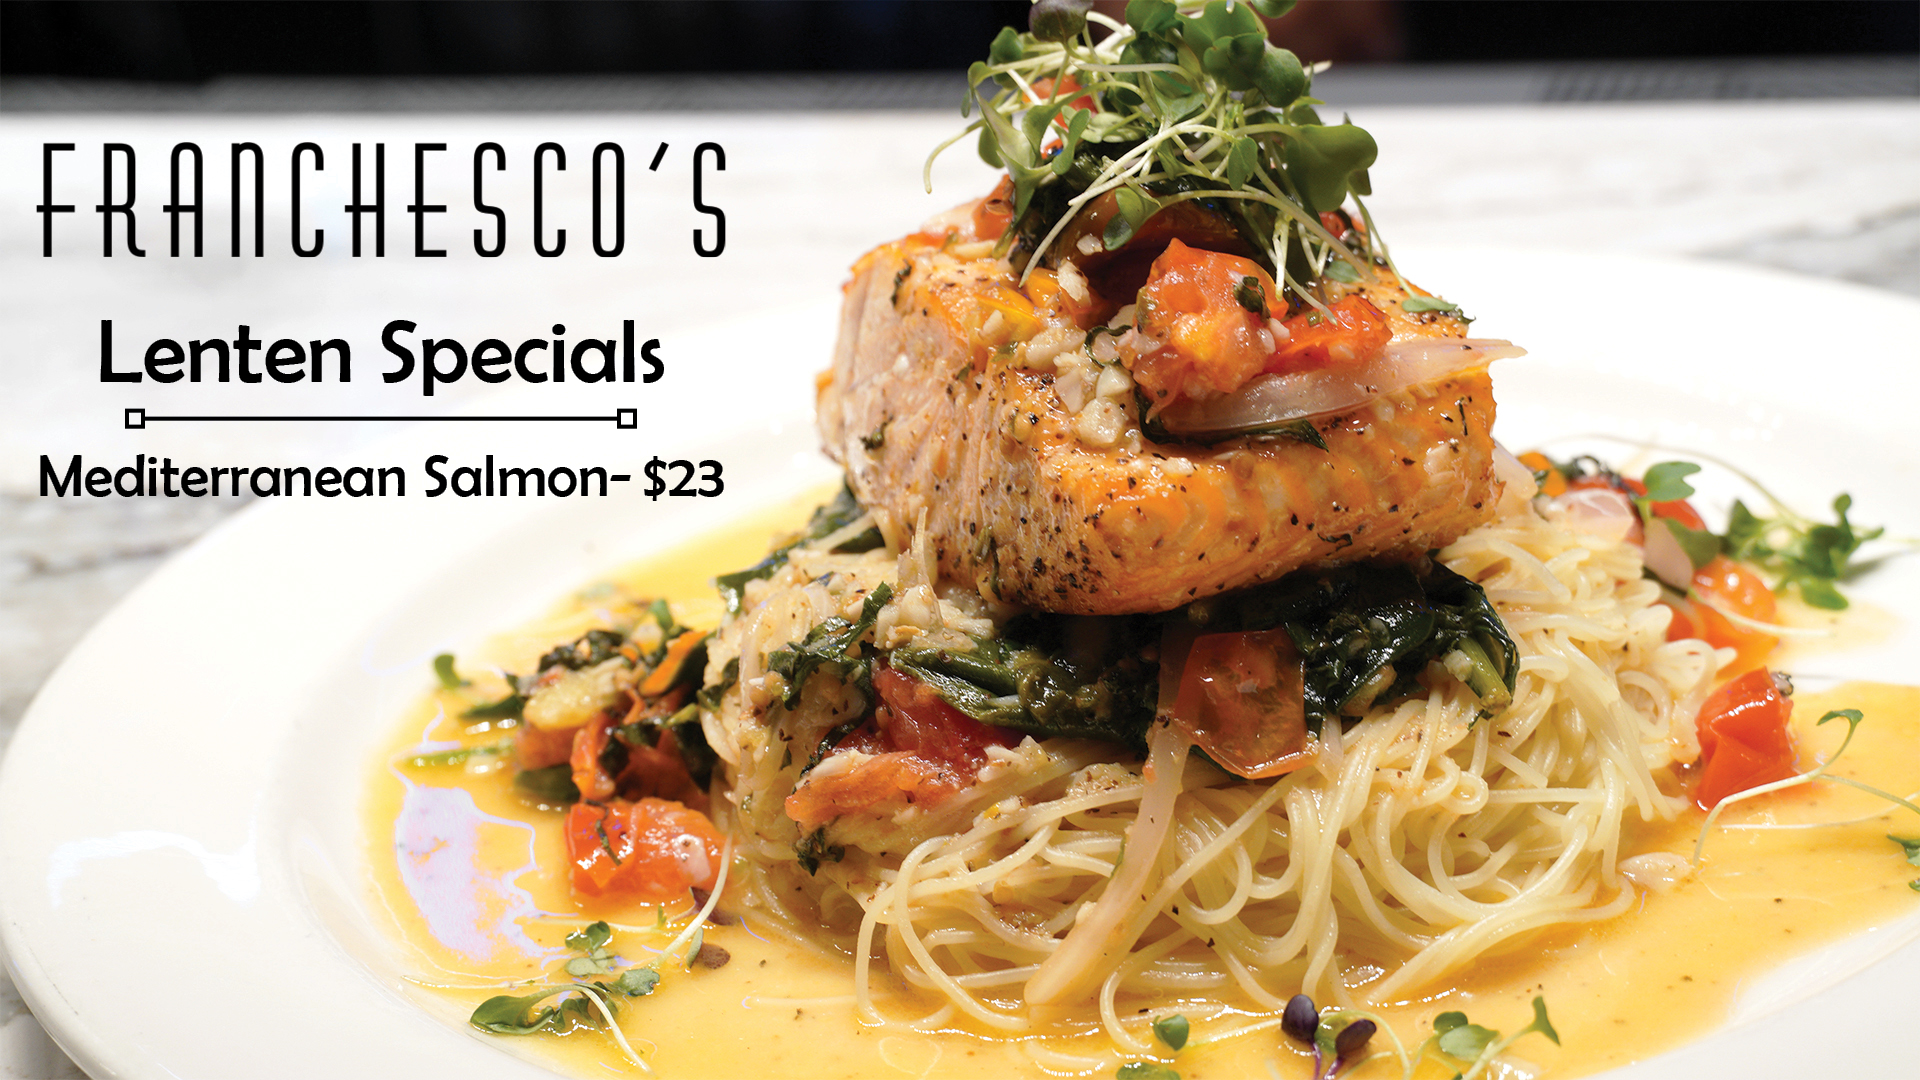 Mediterranean Salmon- Now only $23